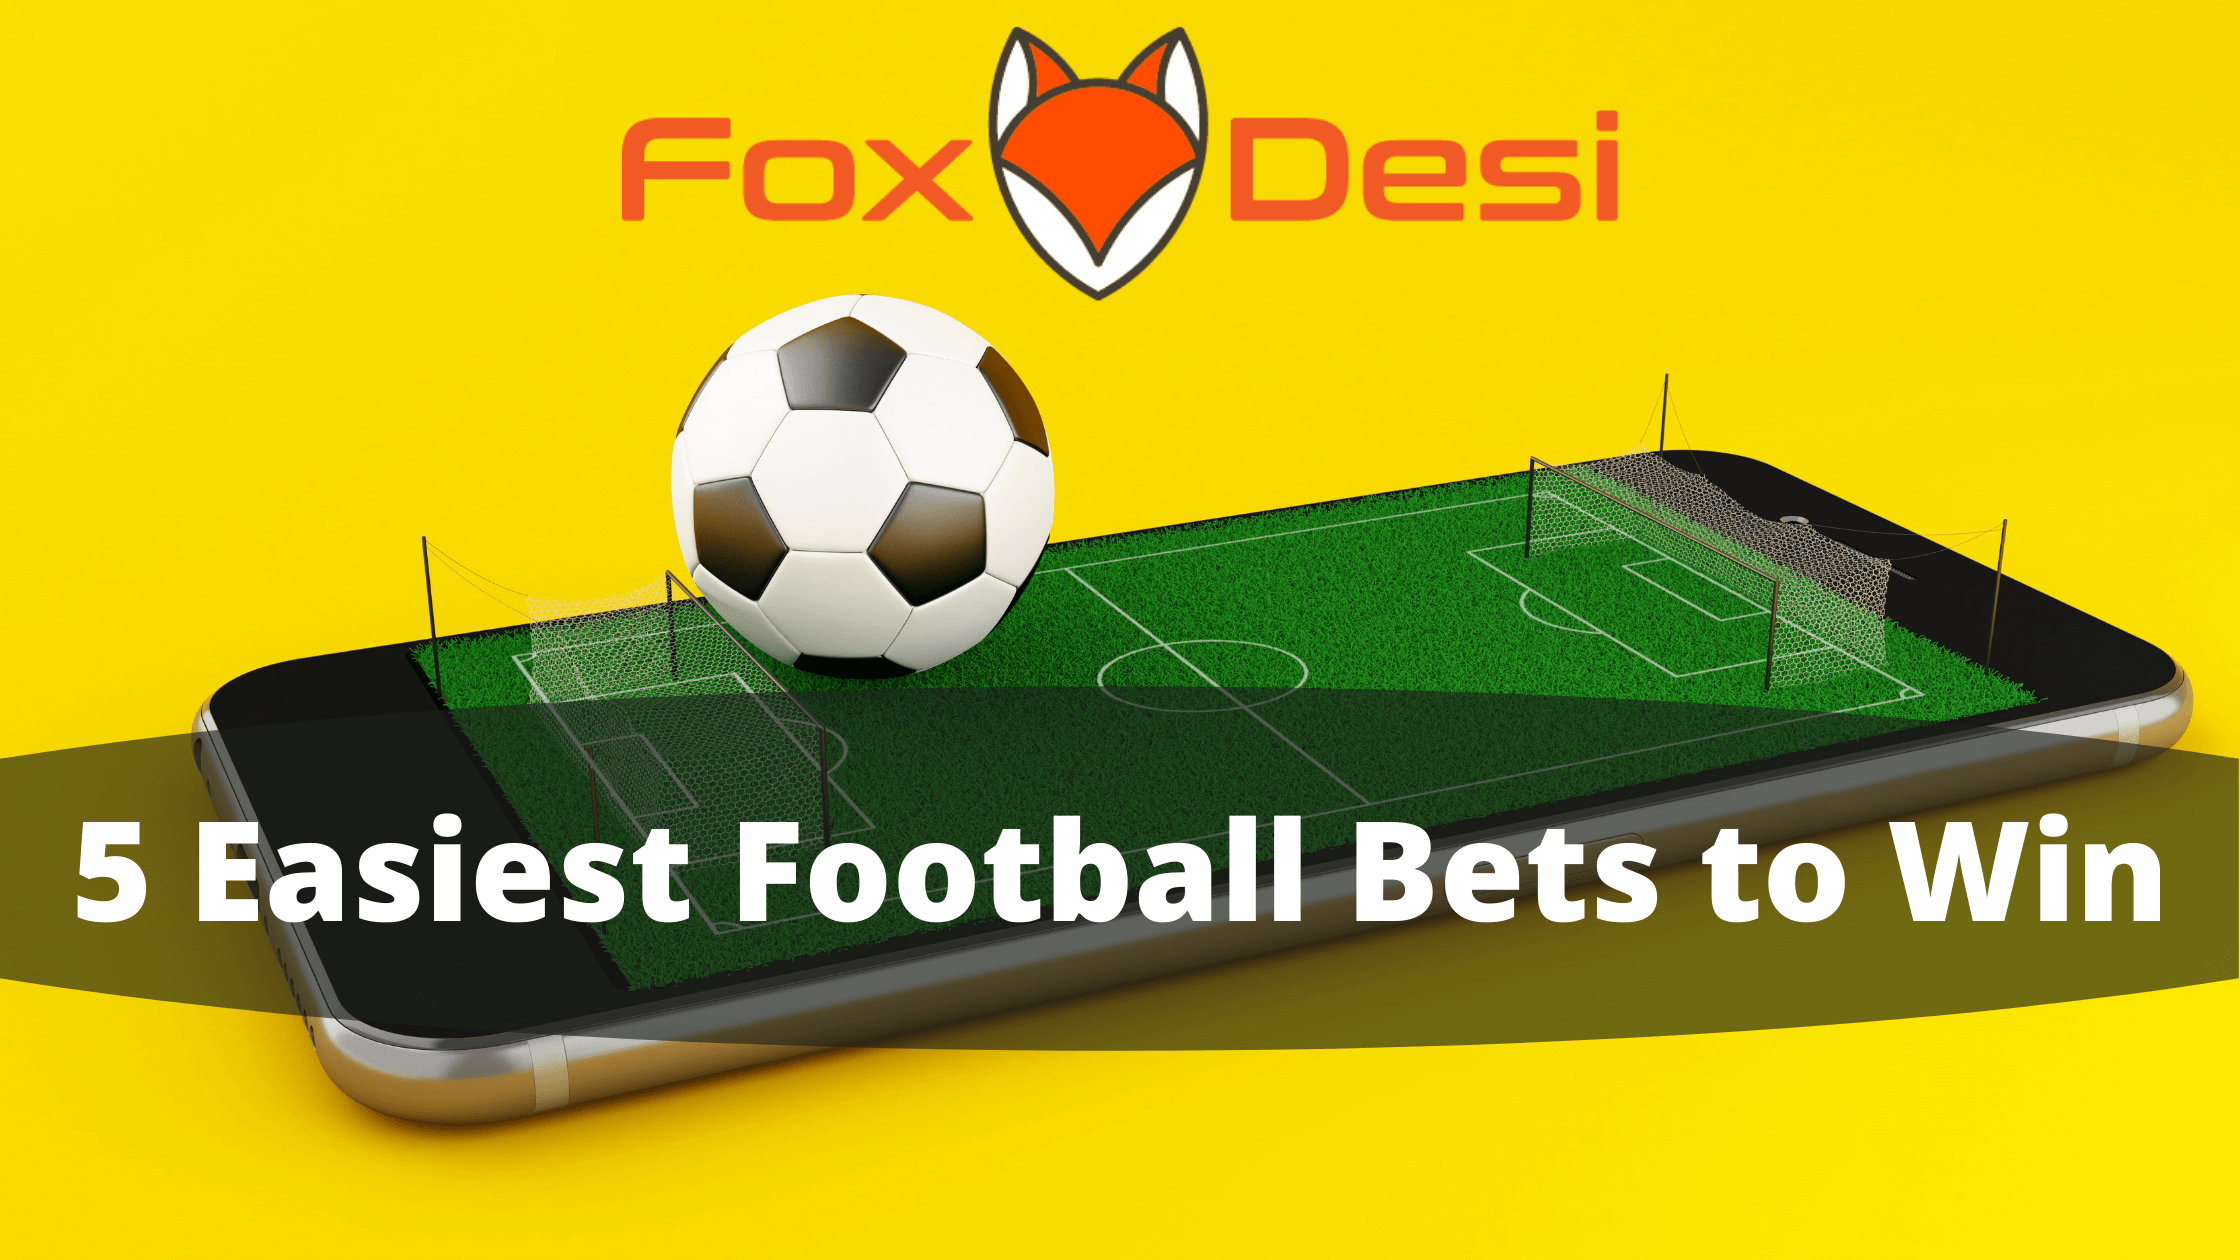 5 Easiest Football Bets to Win with Lowest Risk